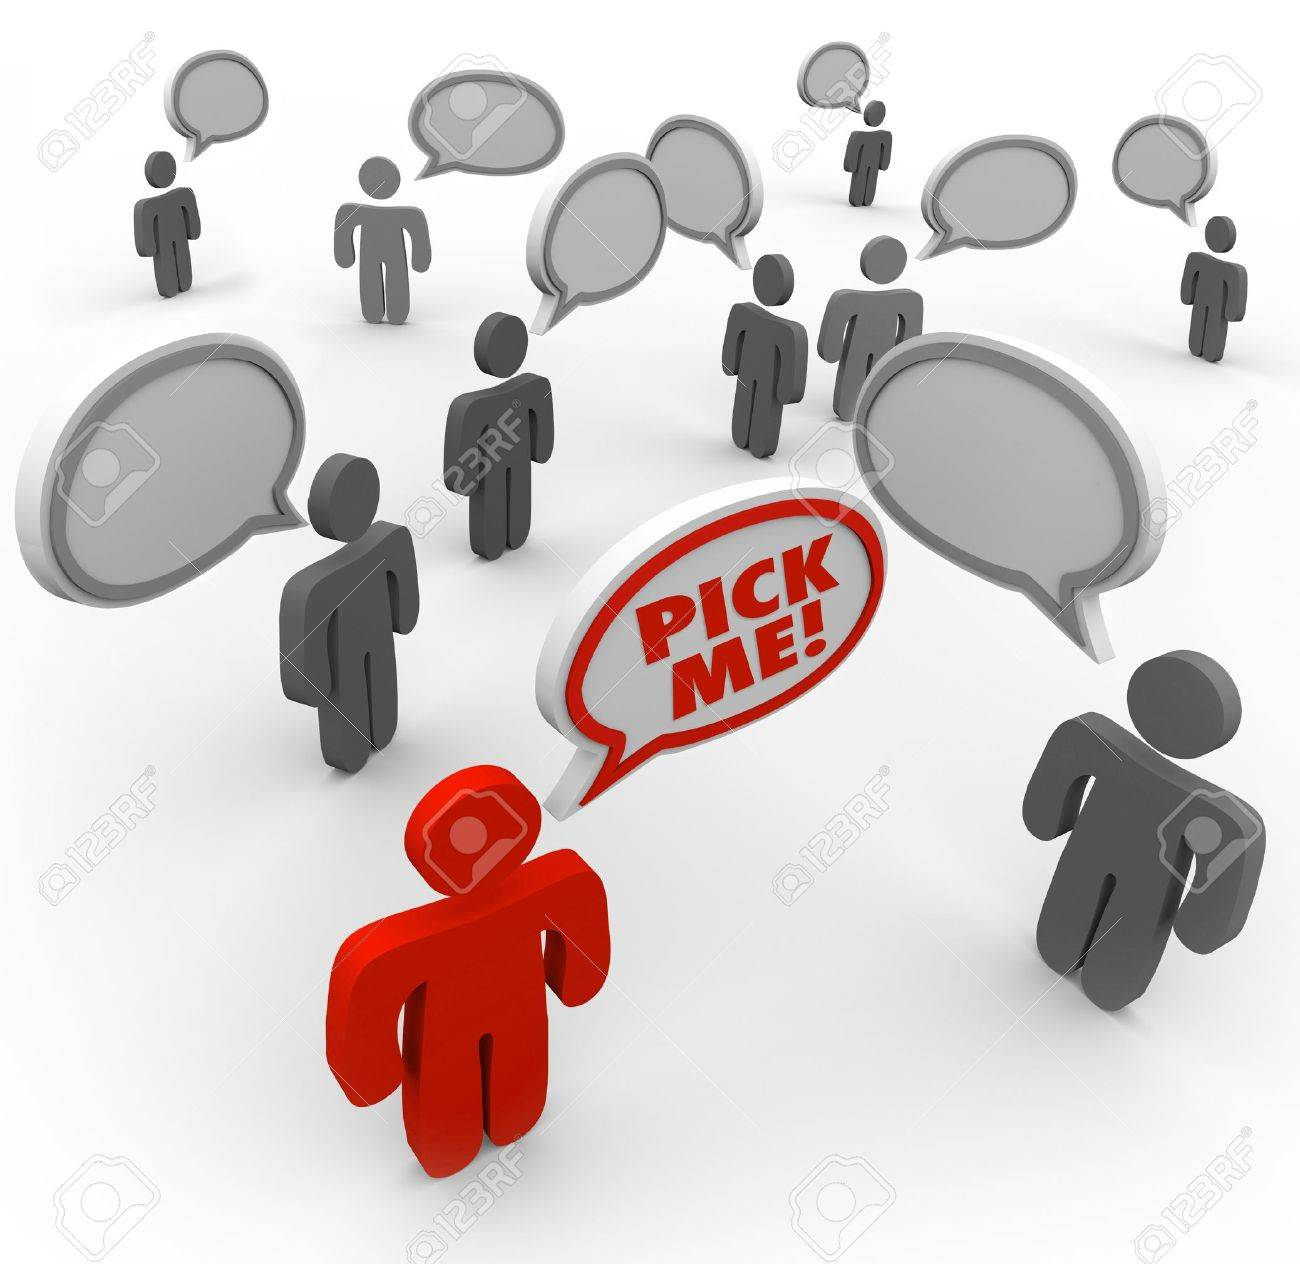 One person says Pick Me and stands out from the crowded field of applicants for a new job or other desired position Stock Photo - 10015033